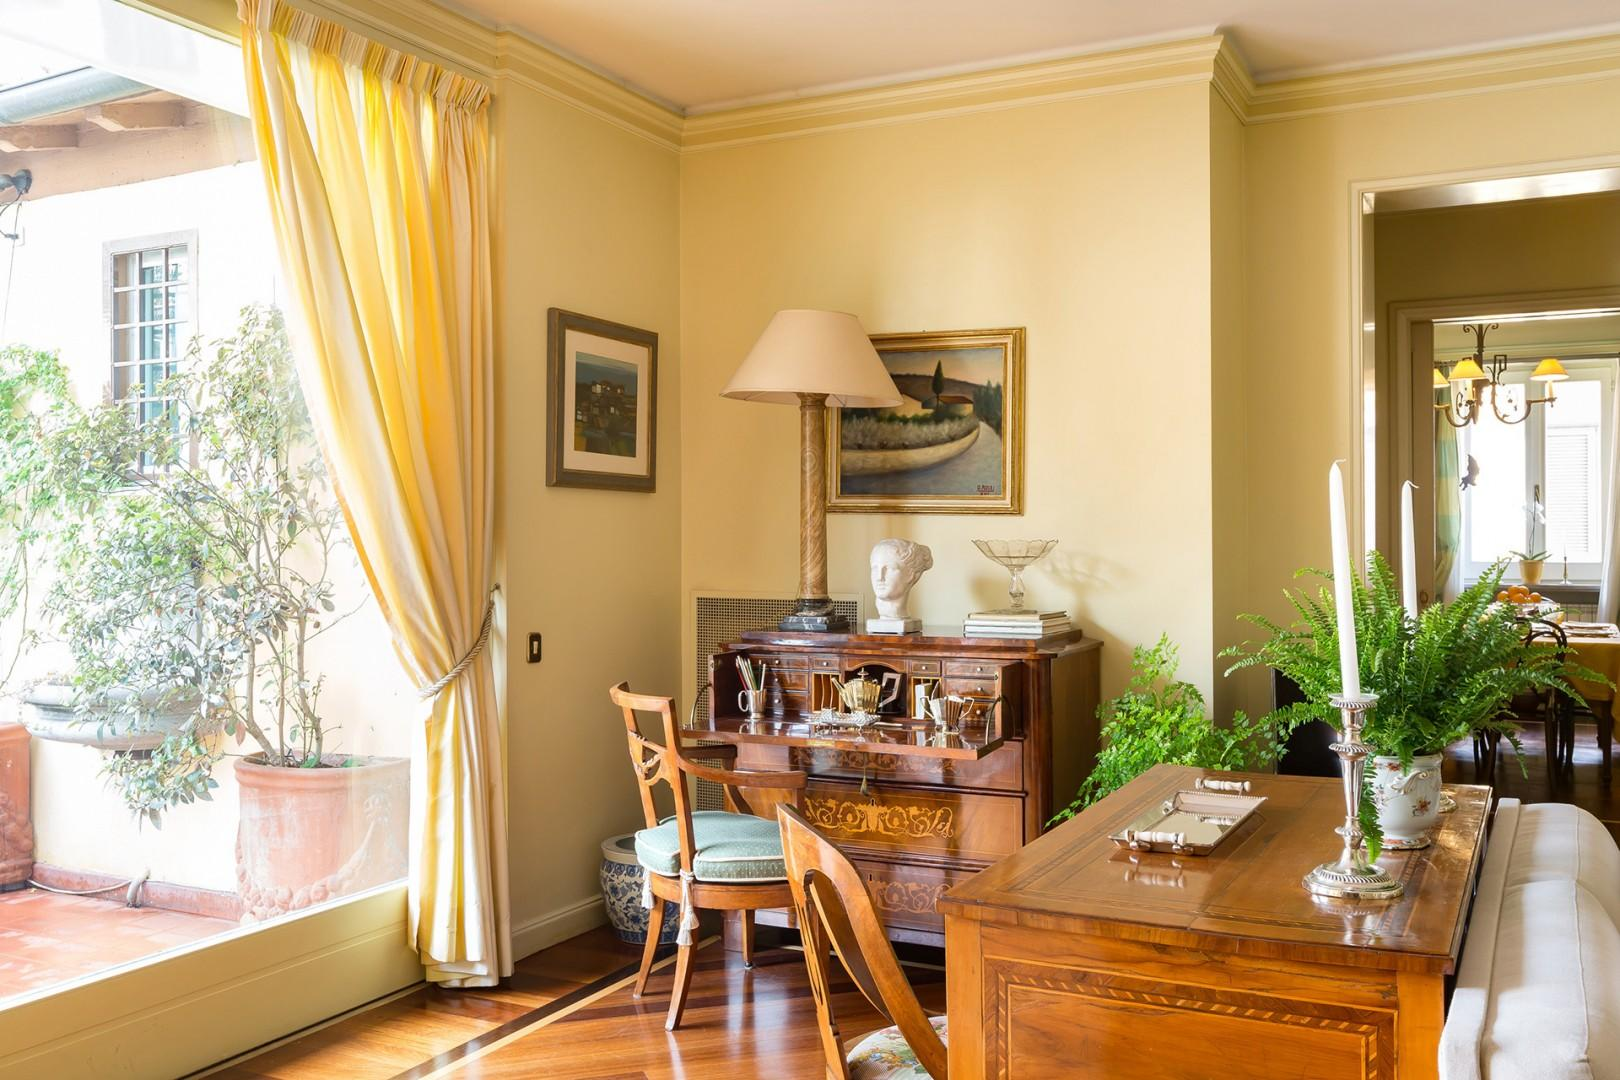 An antique desk in the corner of the living room. You can see the dining room across the hall.